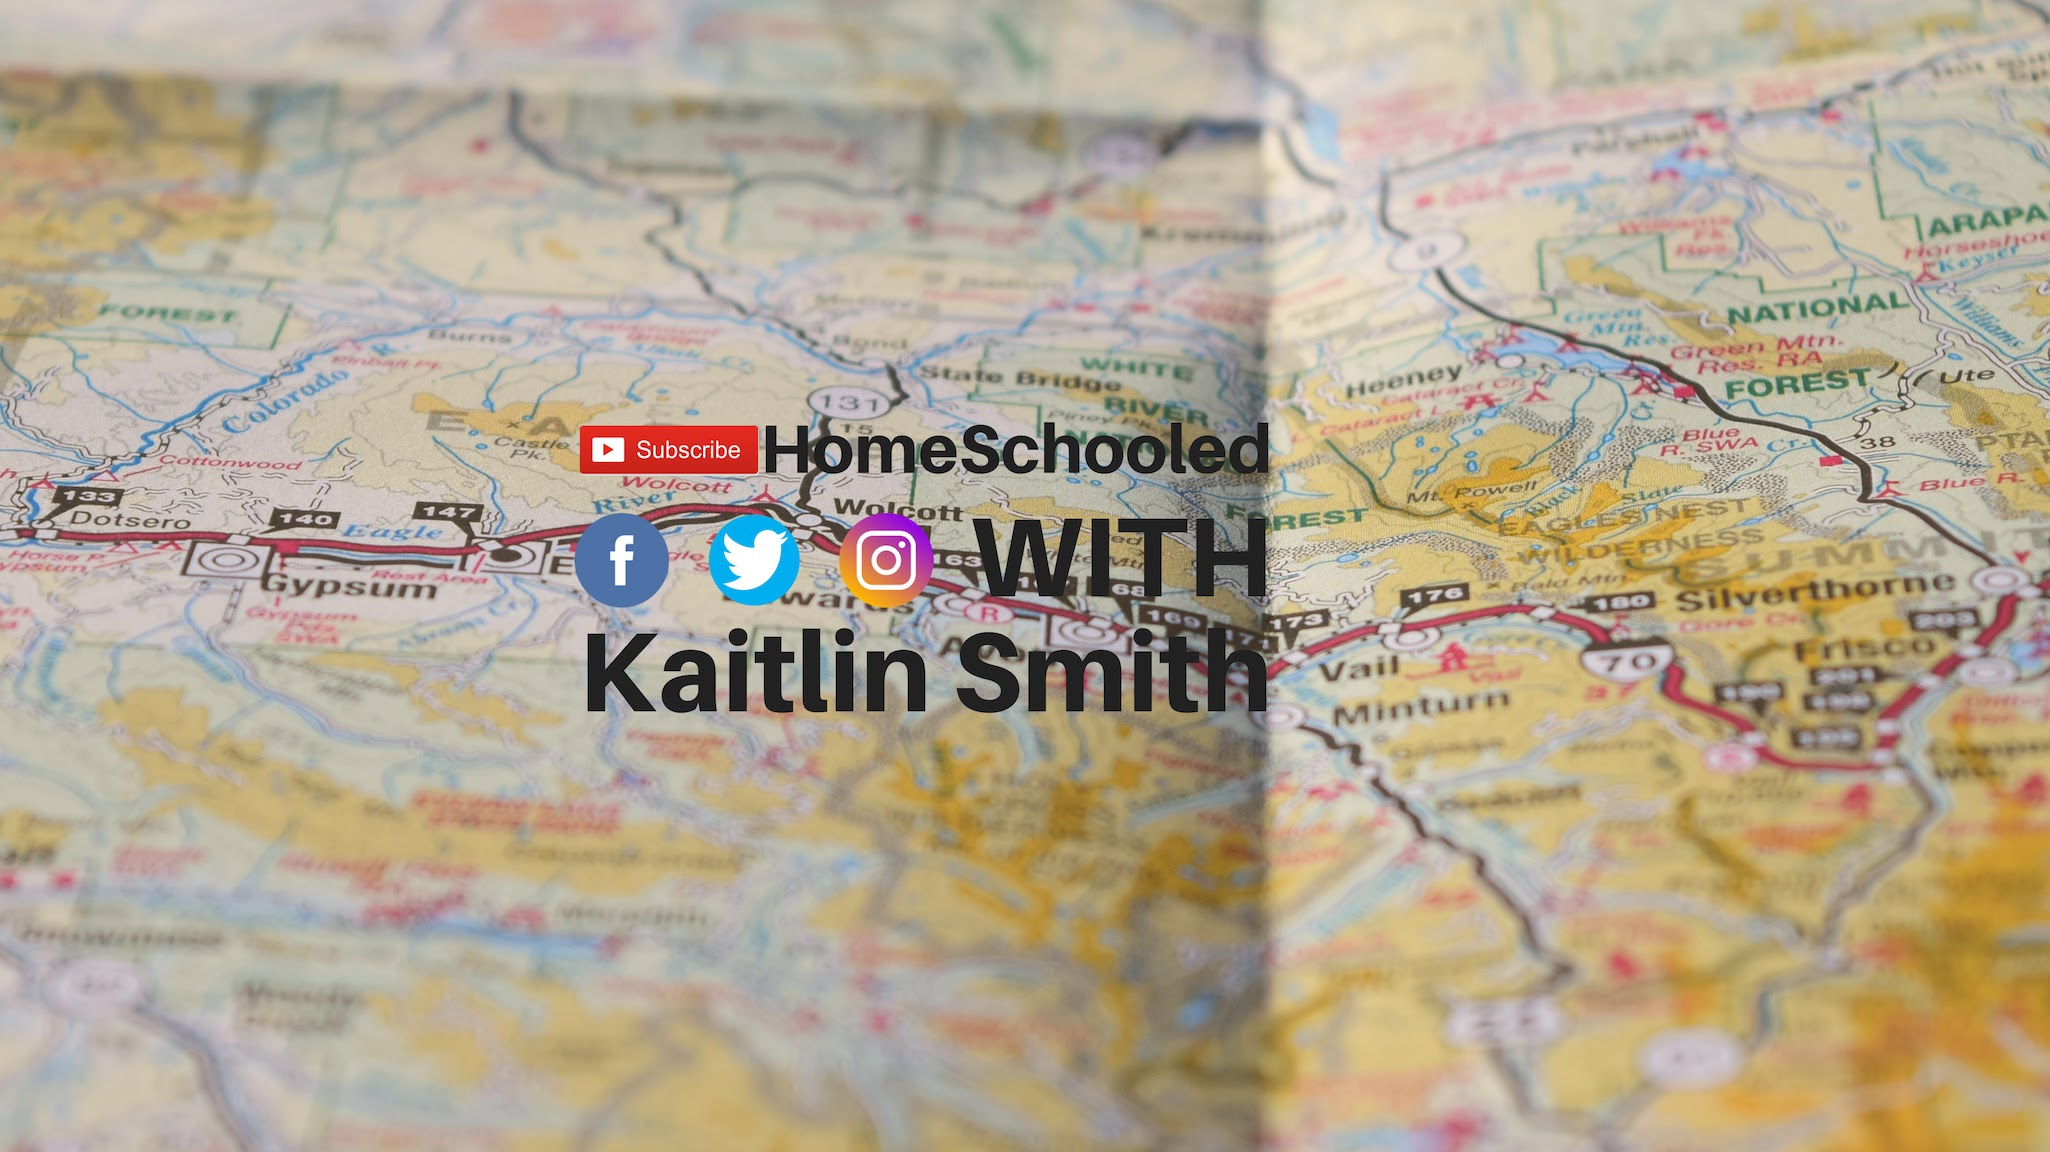 HomeSchooled with Kaitlin Smith